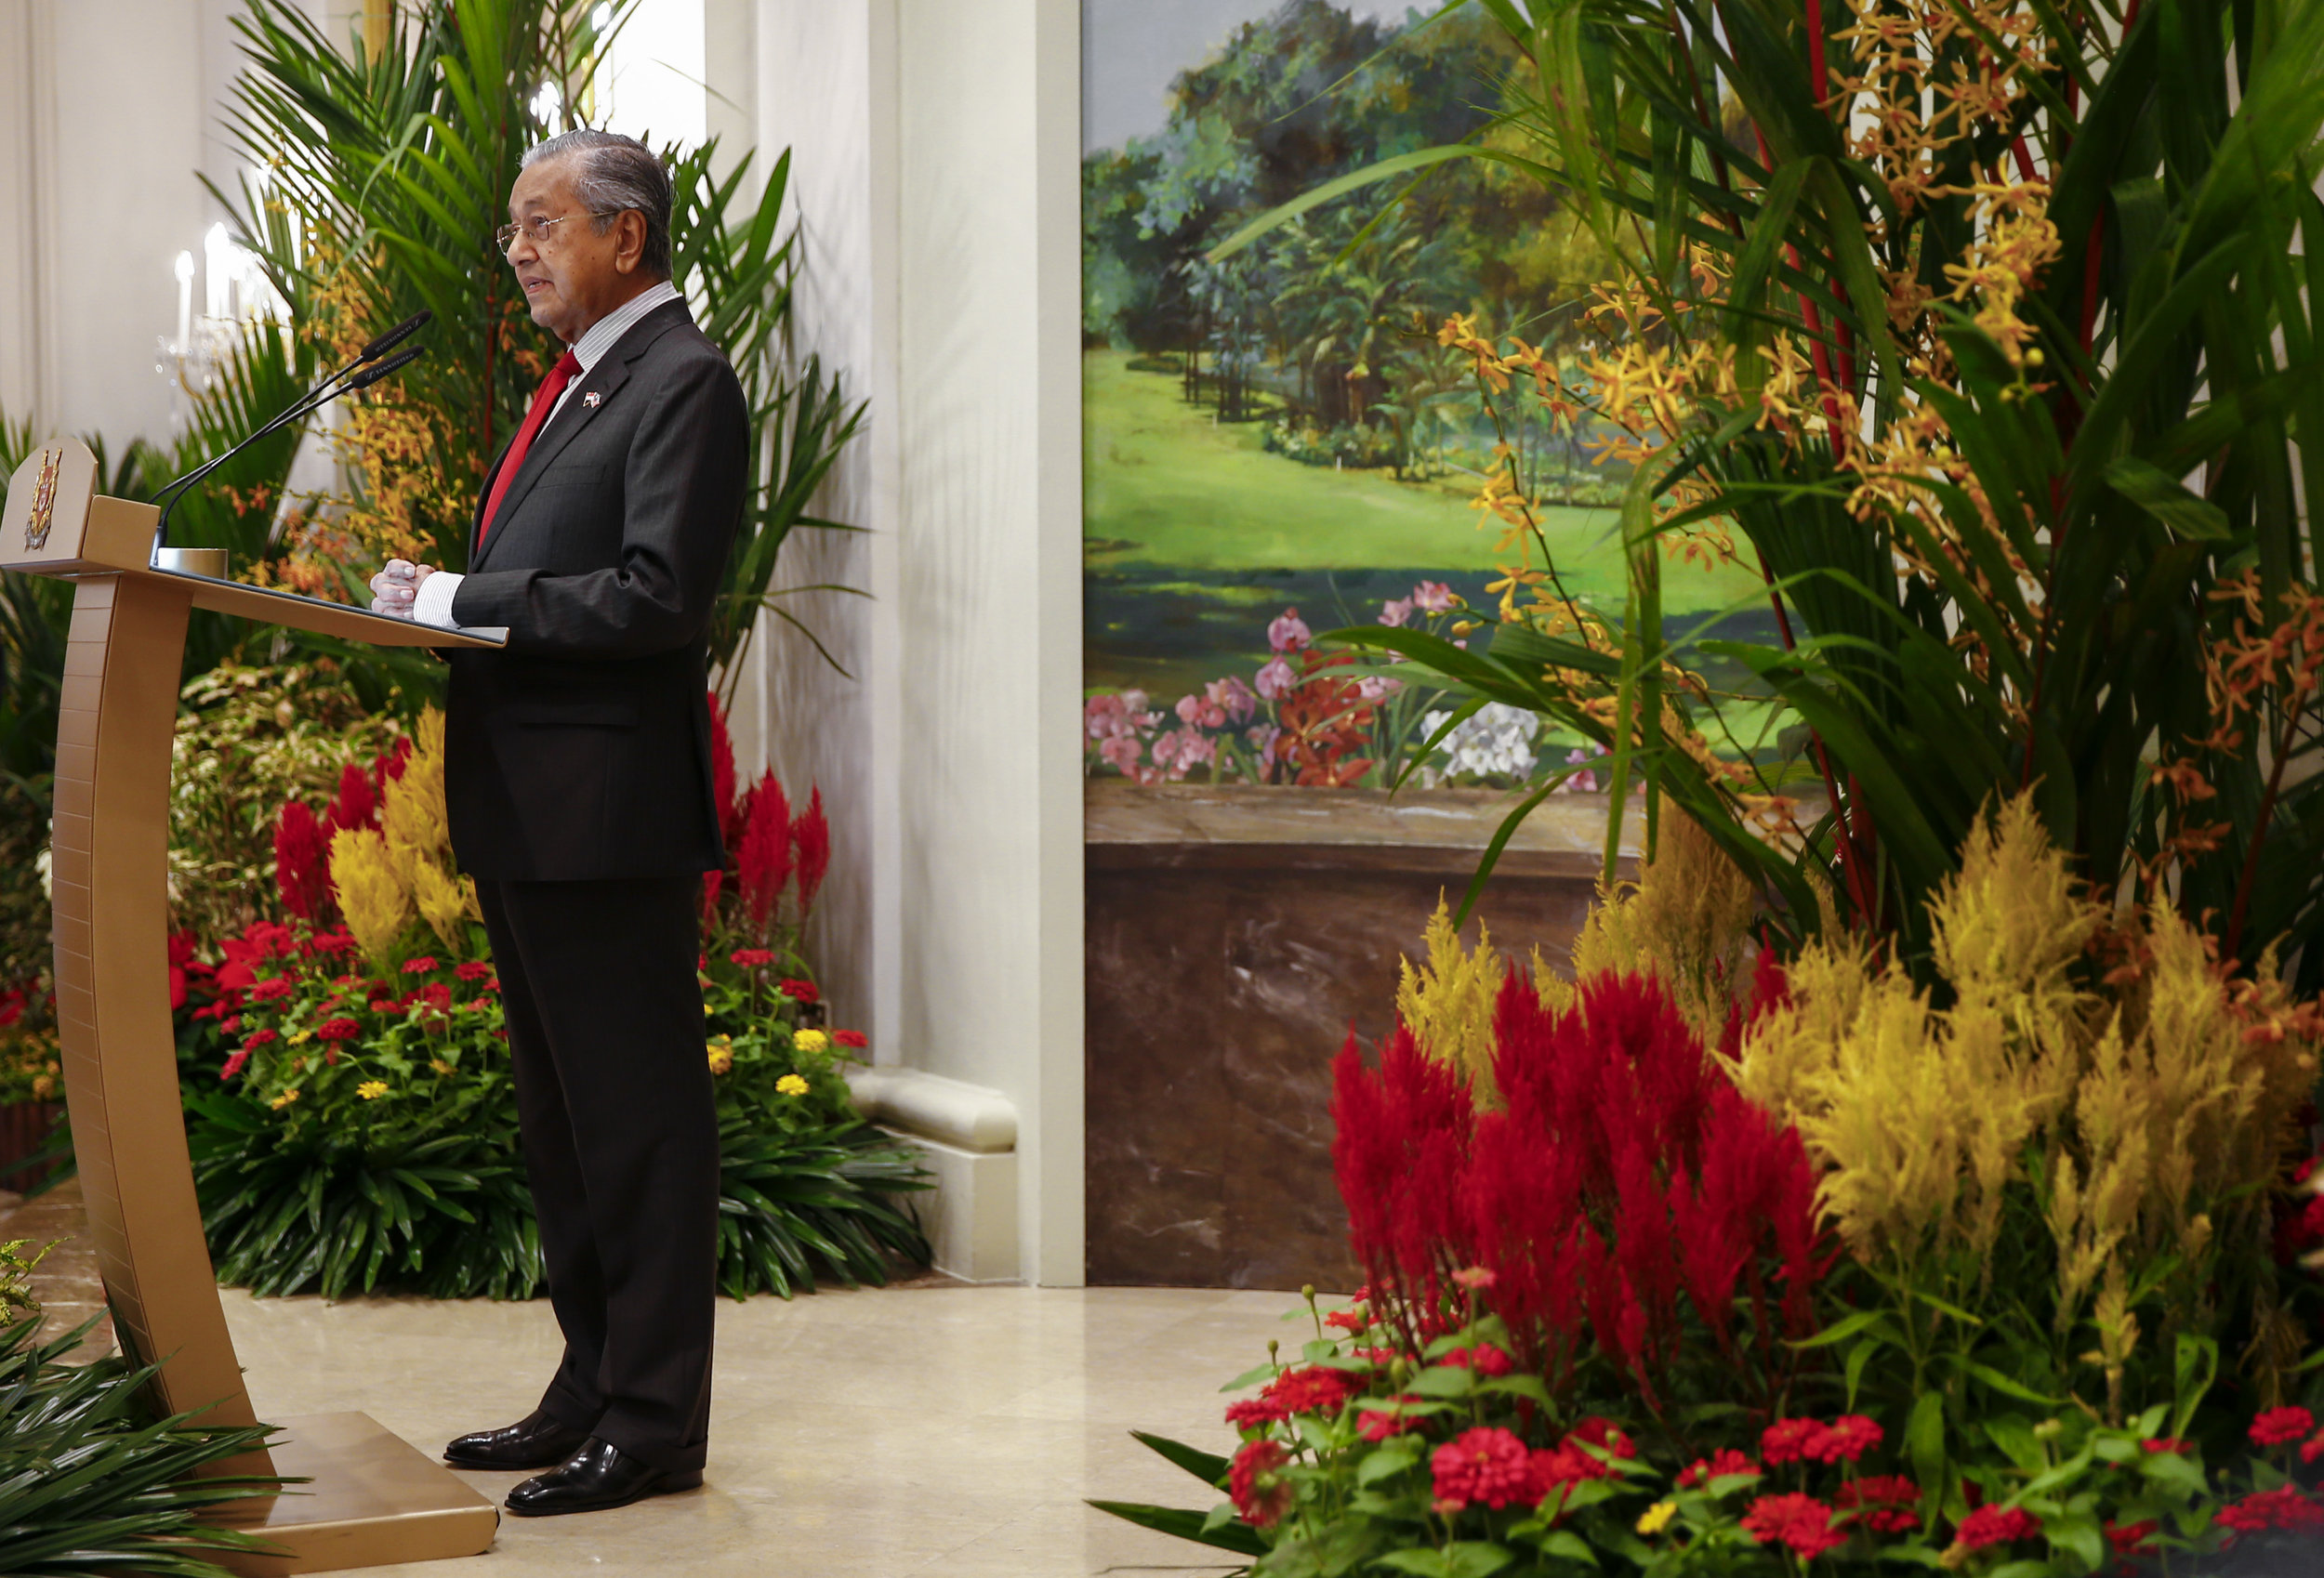 Malaysian Prime Minister Mahathir Mohamad delivers remarks during a visit to the Istana Presidential Palace in Singapore, November 12 2018.